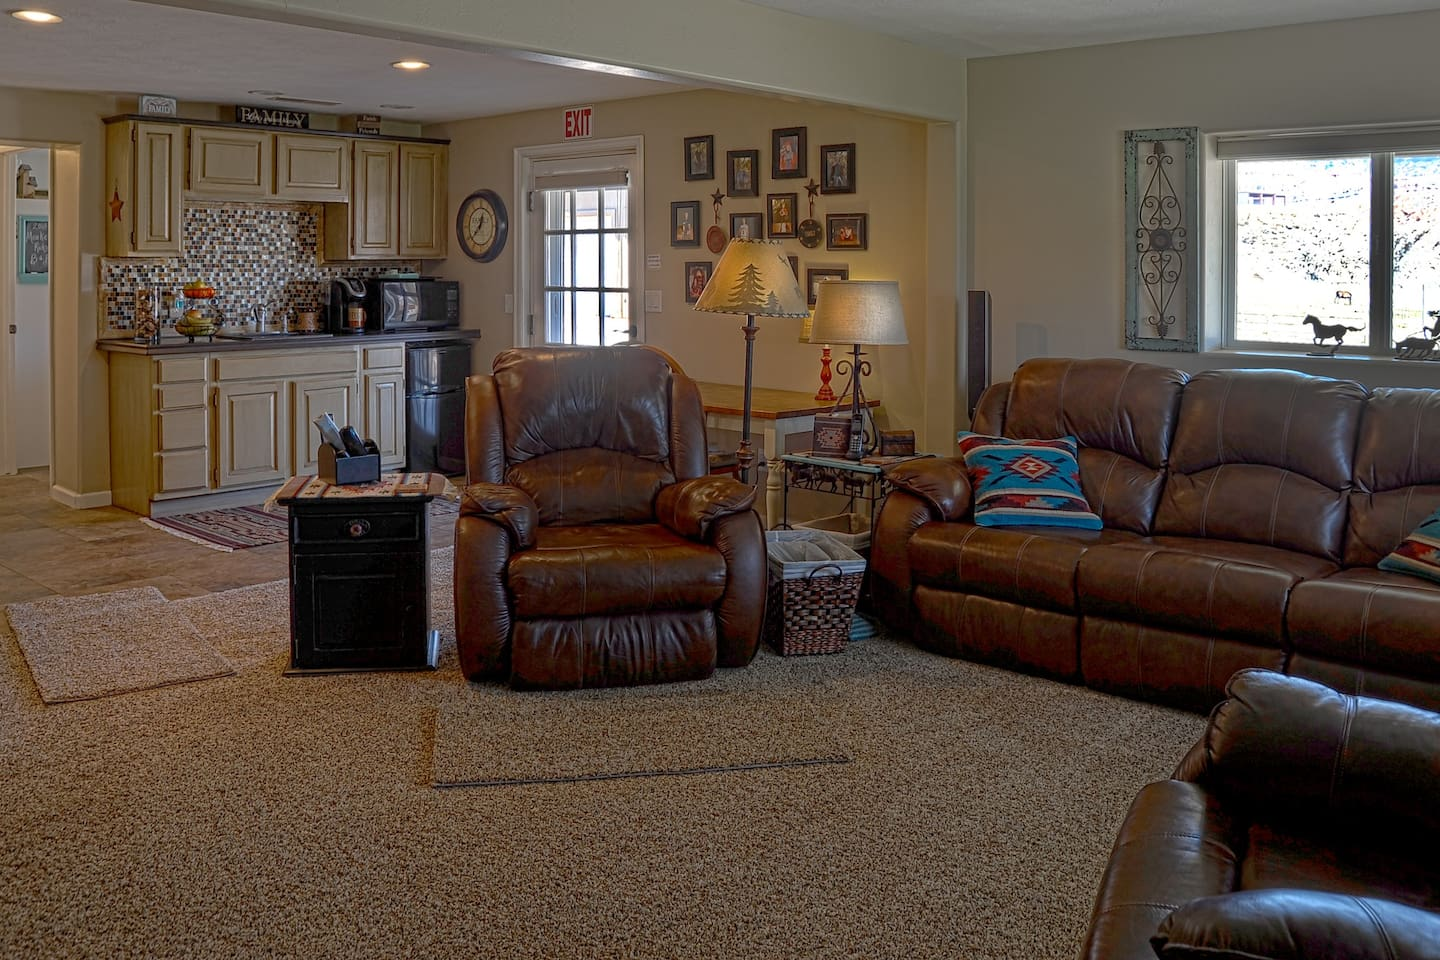 Enjoy breakfast in the kitchenette or Relax in large comfy family room with table and chairs